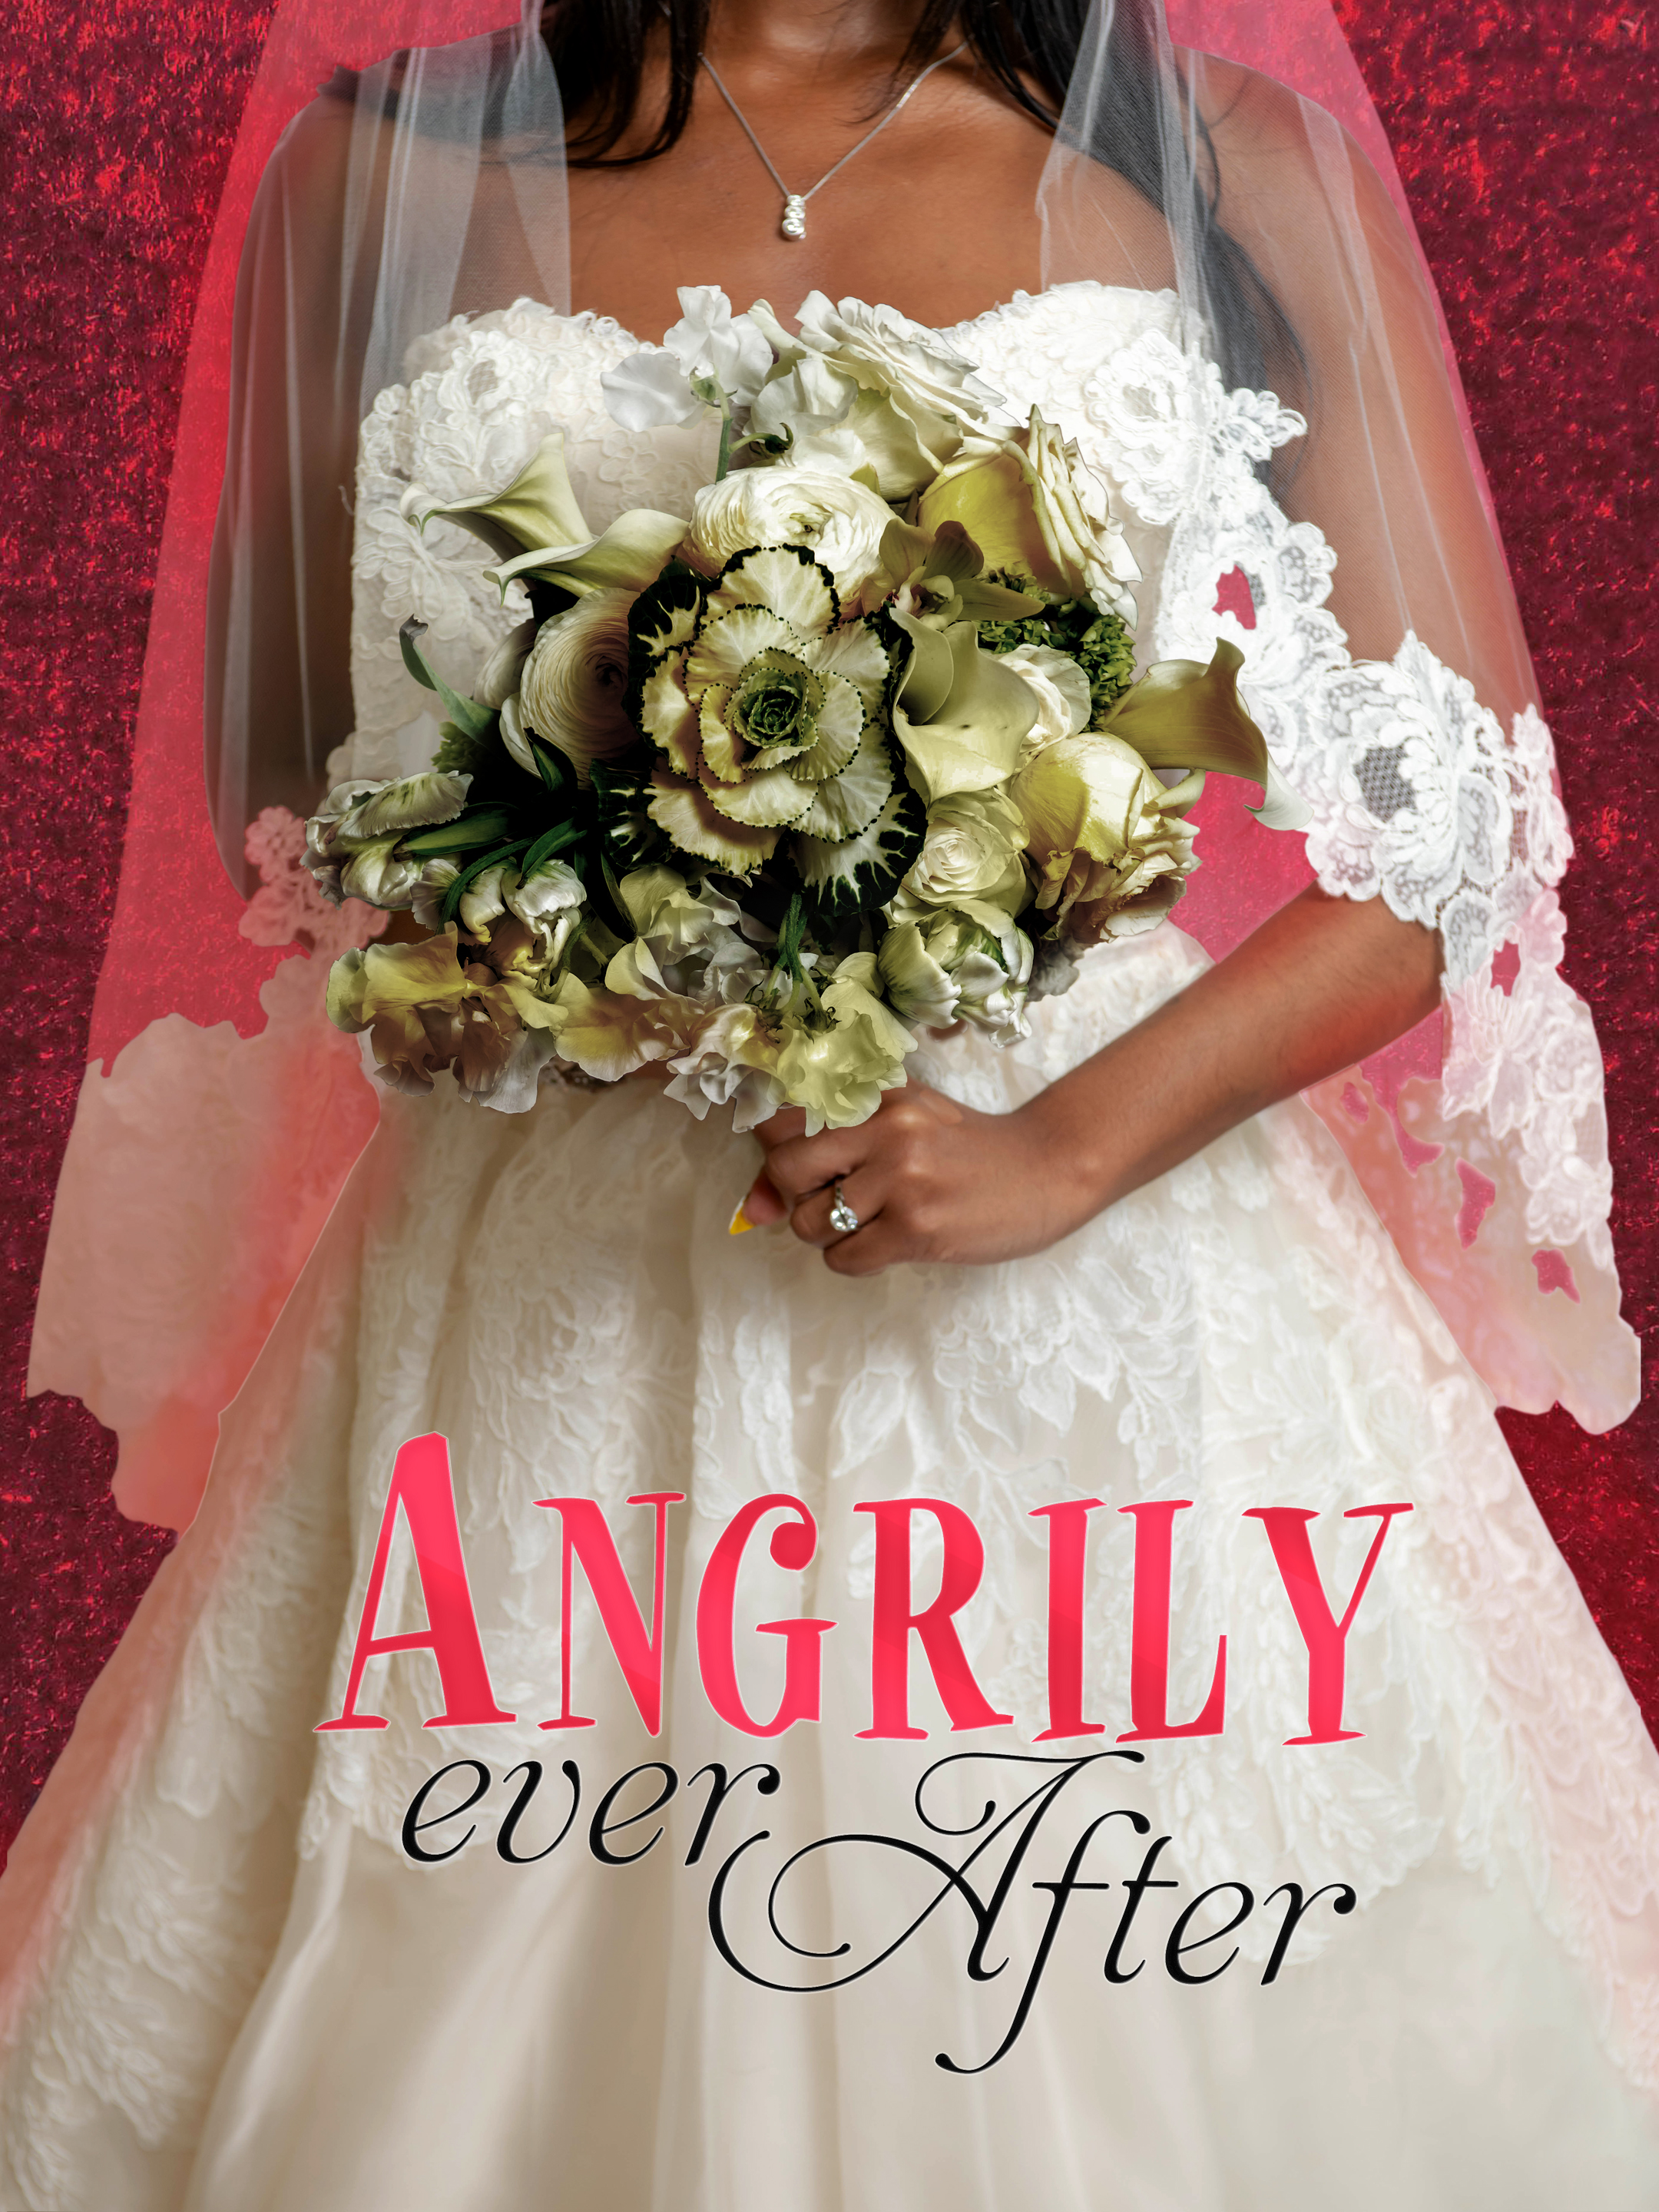 Angrily Ever After kapak